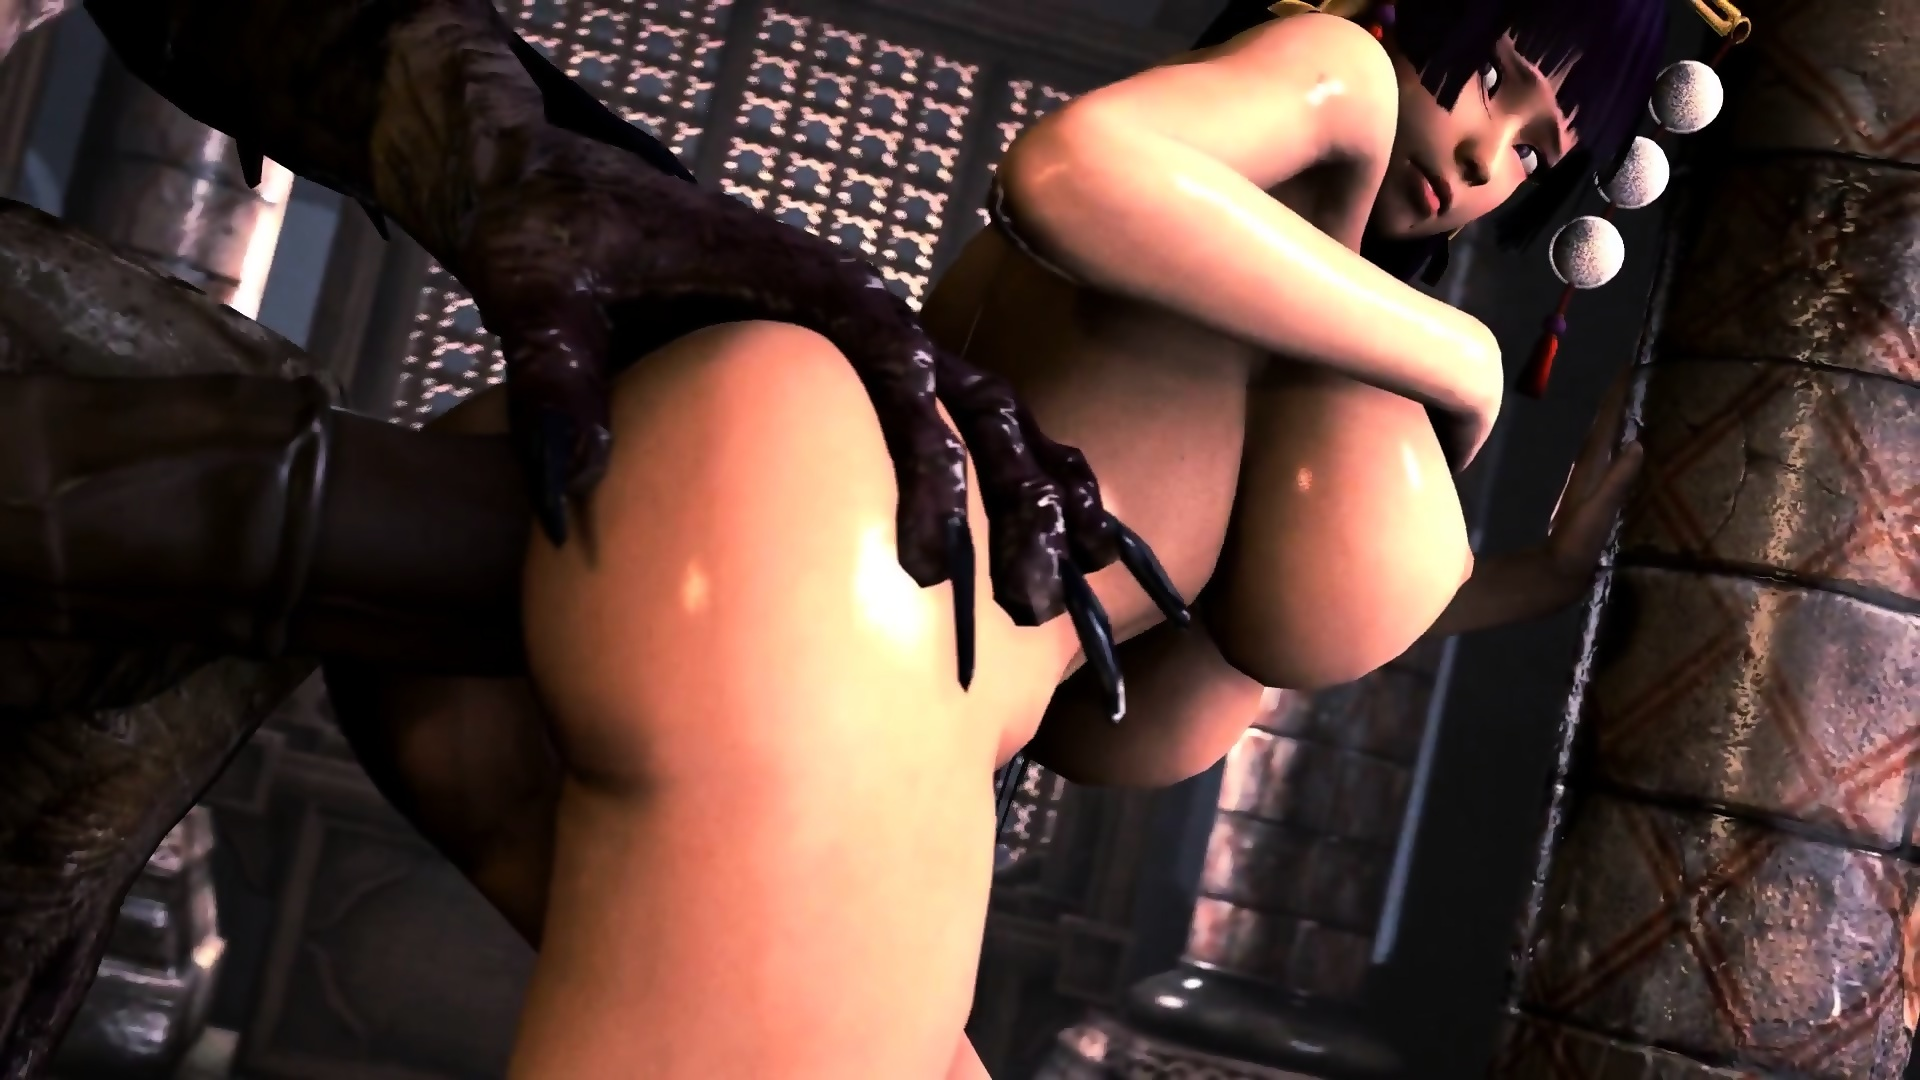 3D Hentai Video hmv sfm 3d ellie quickie hentai video hardcore